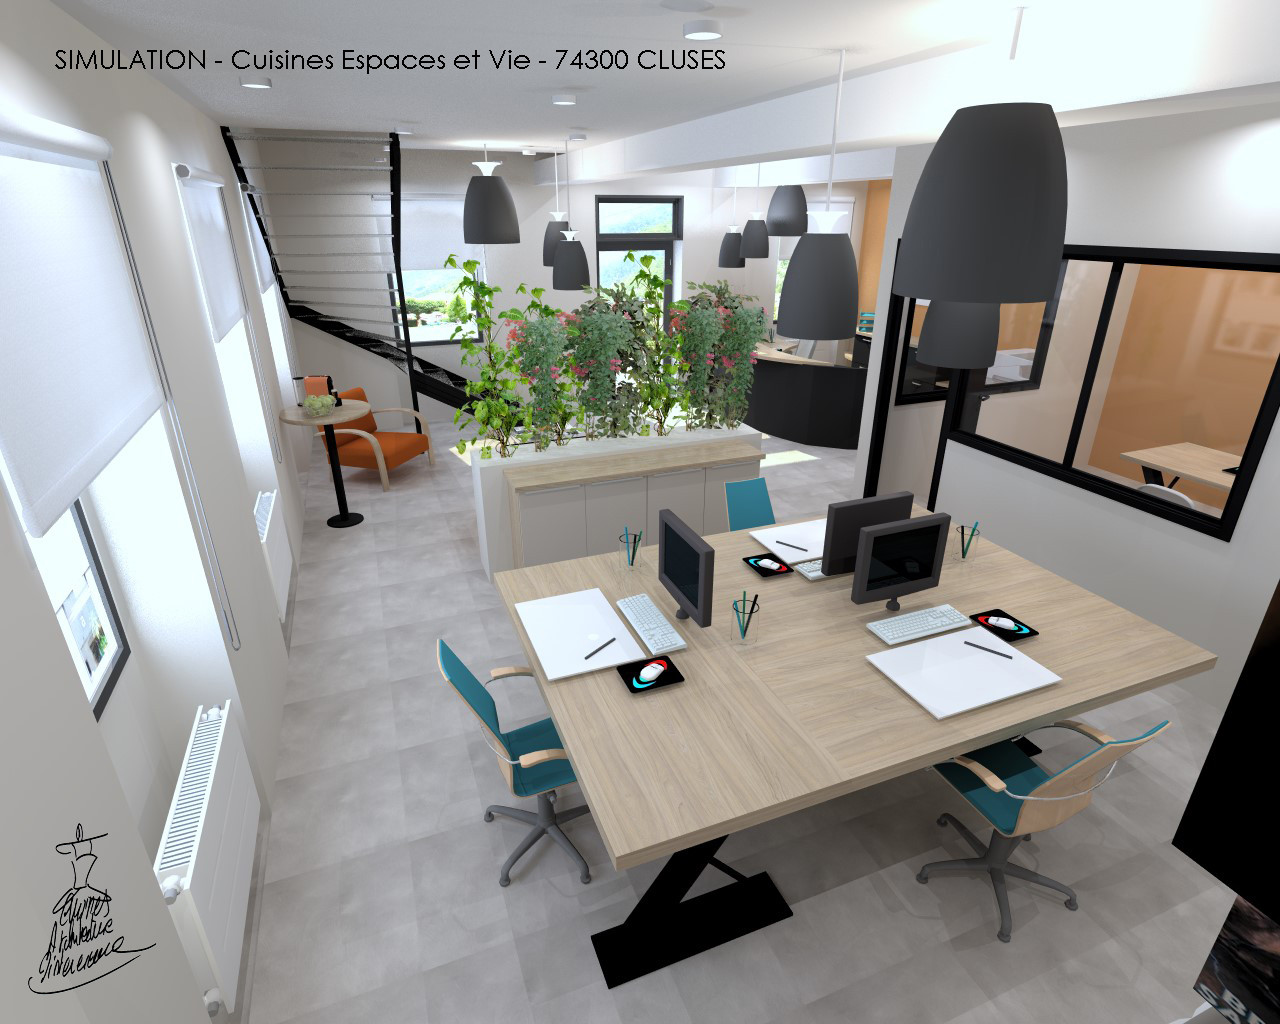 Coaching Deco Tarif Cuisinesespacesetvie Coaching Déco Tarifs